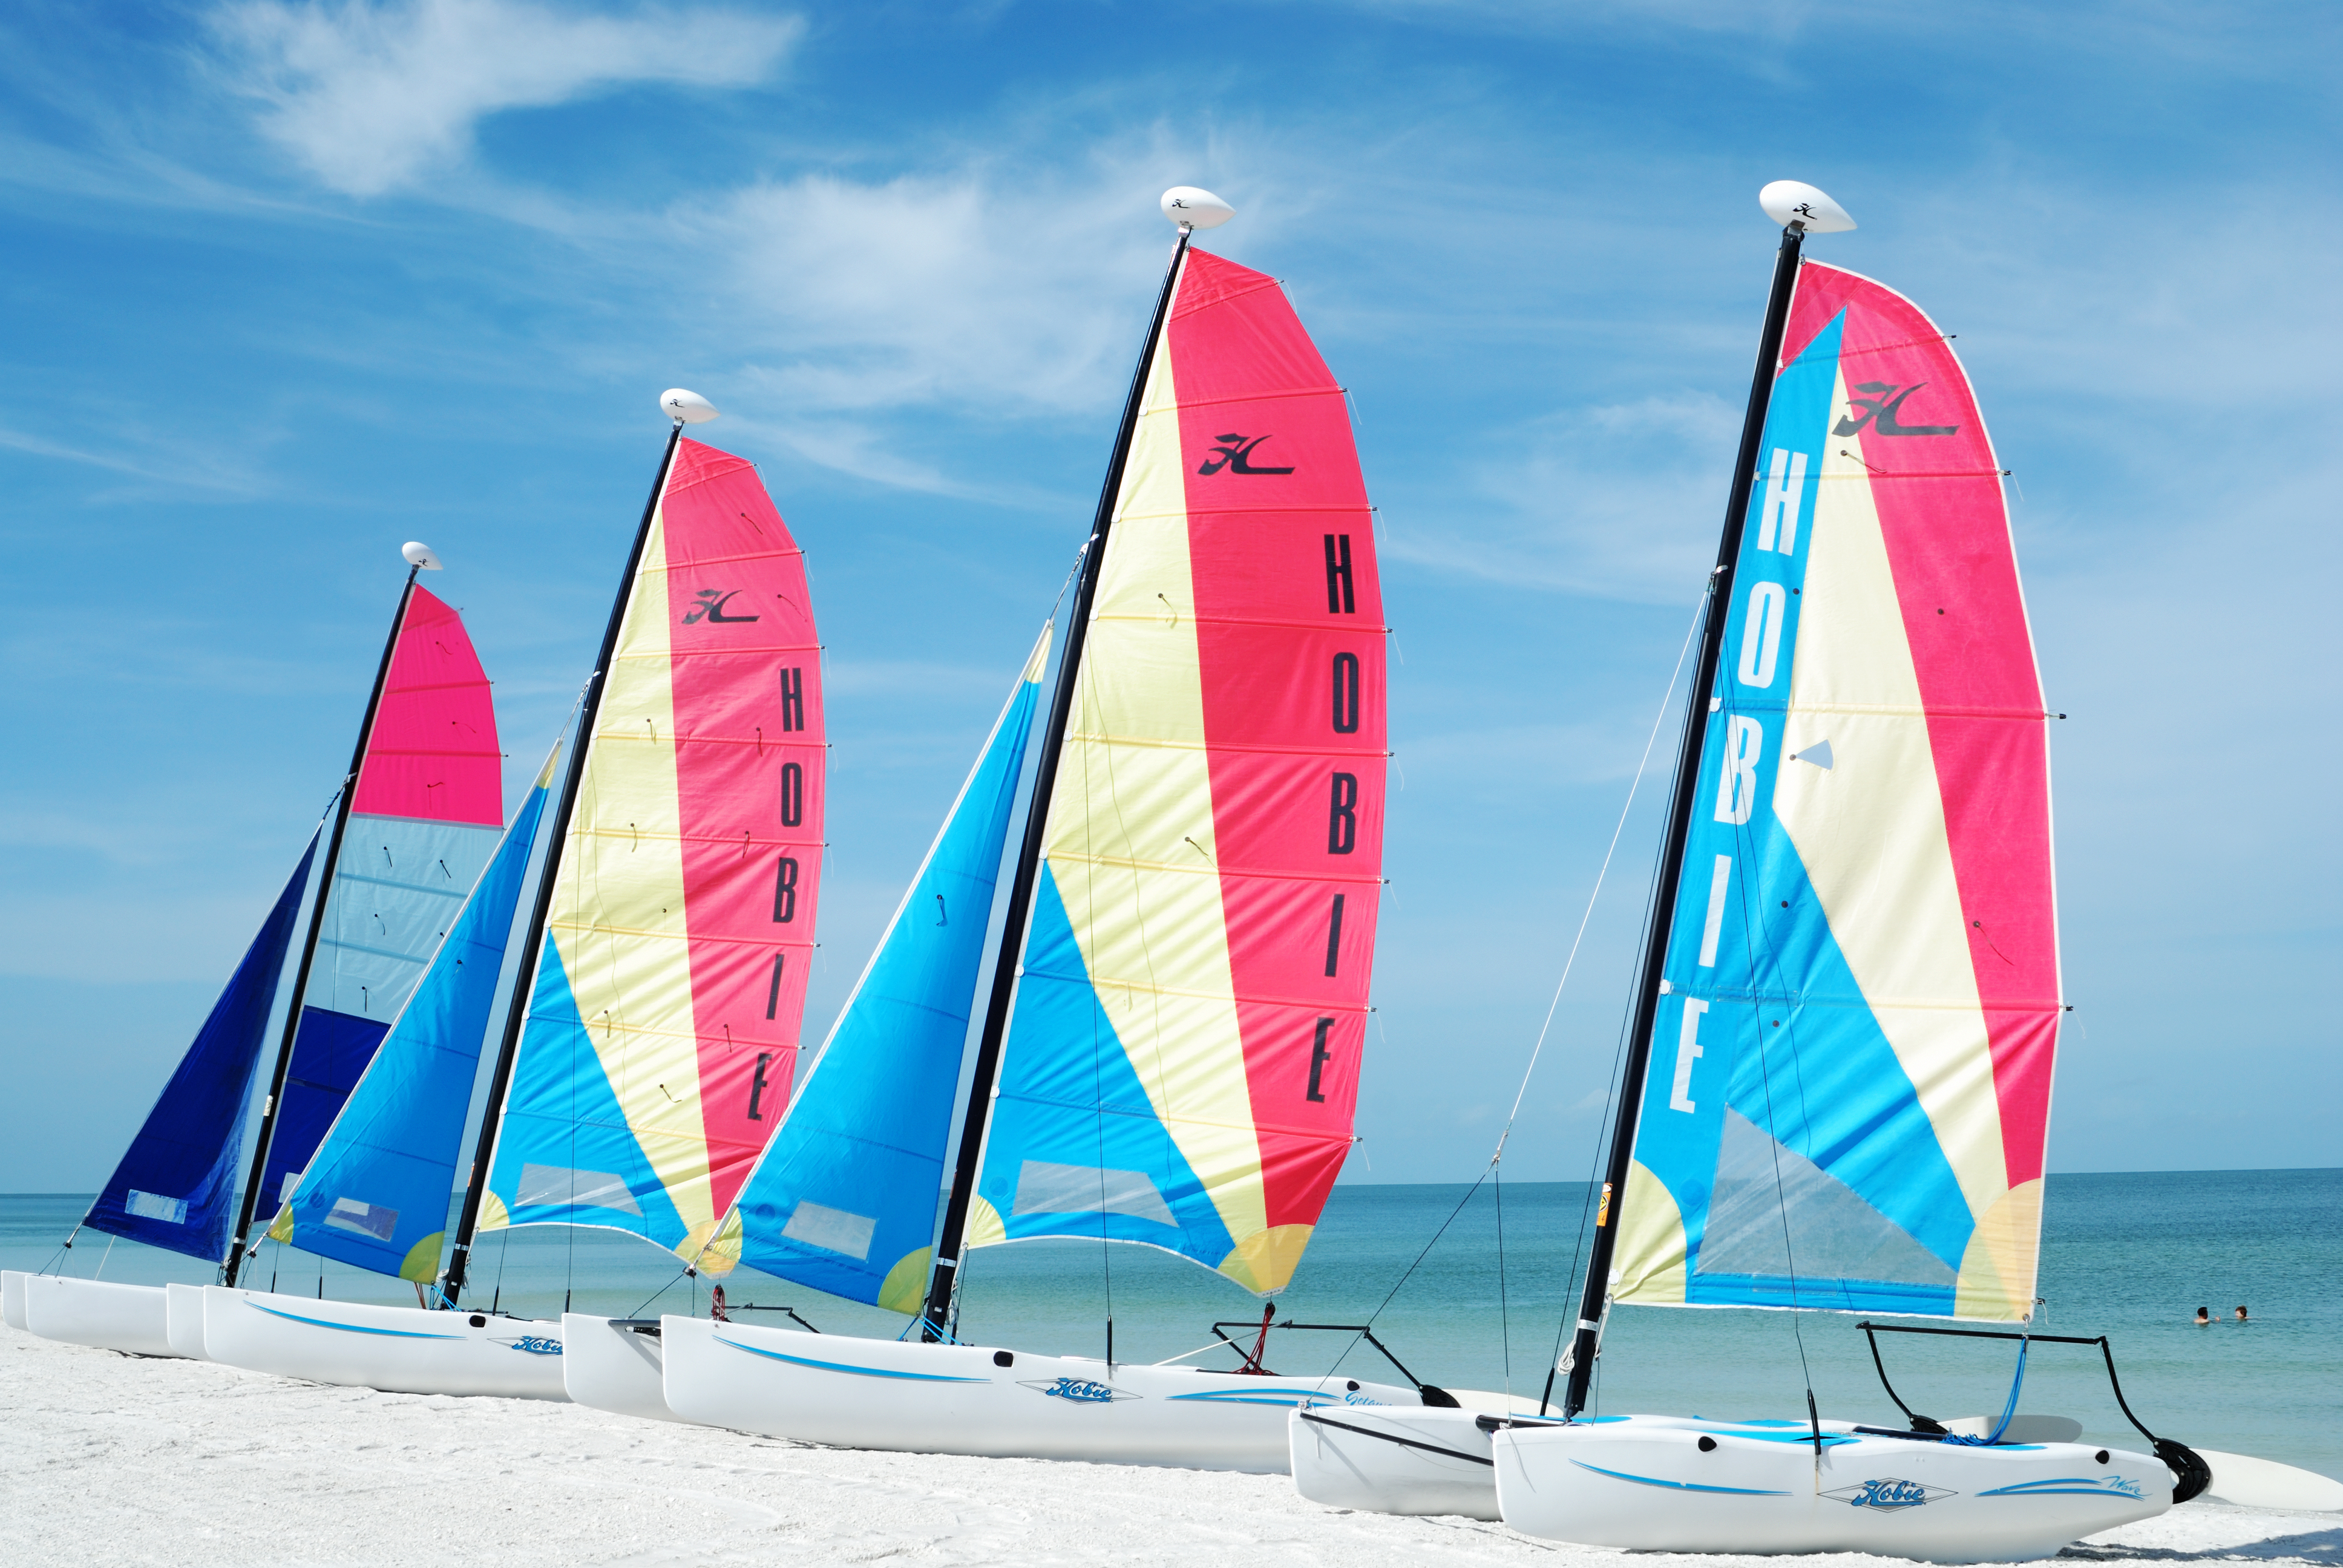 Sail boats in the Florida Keys